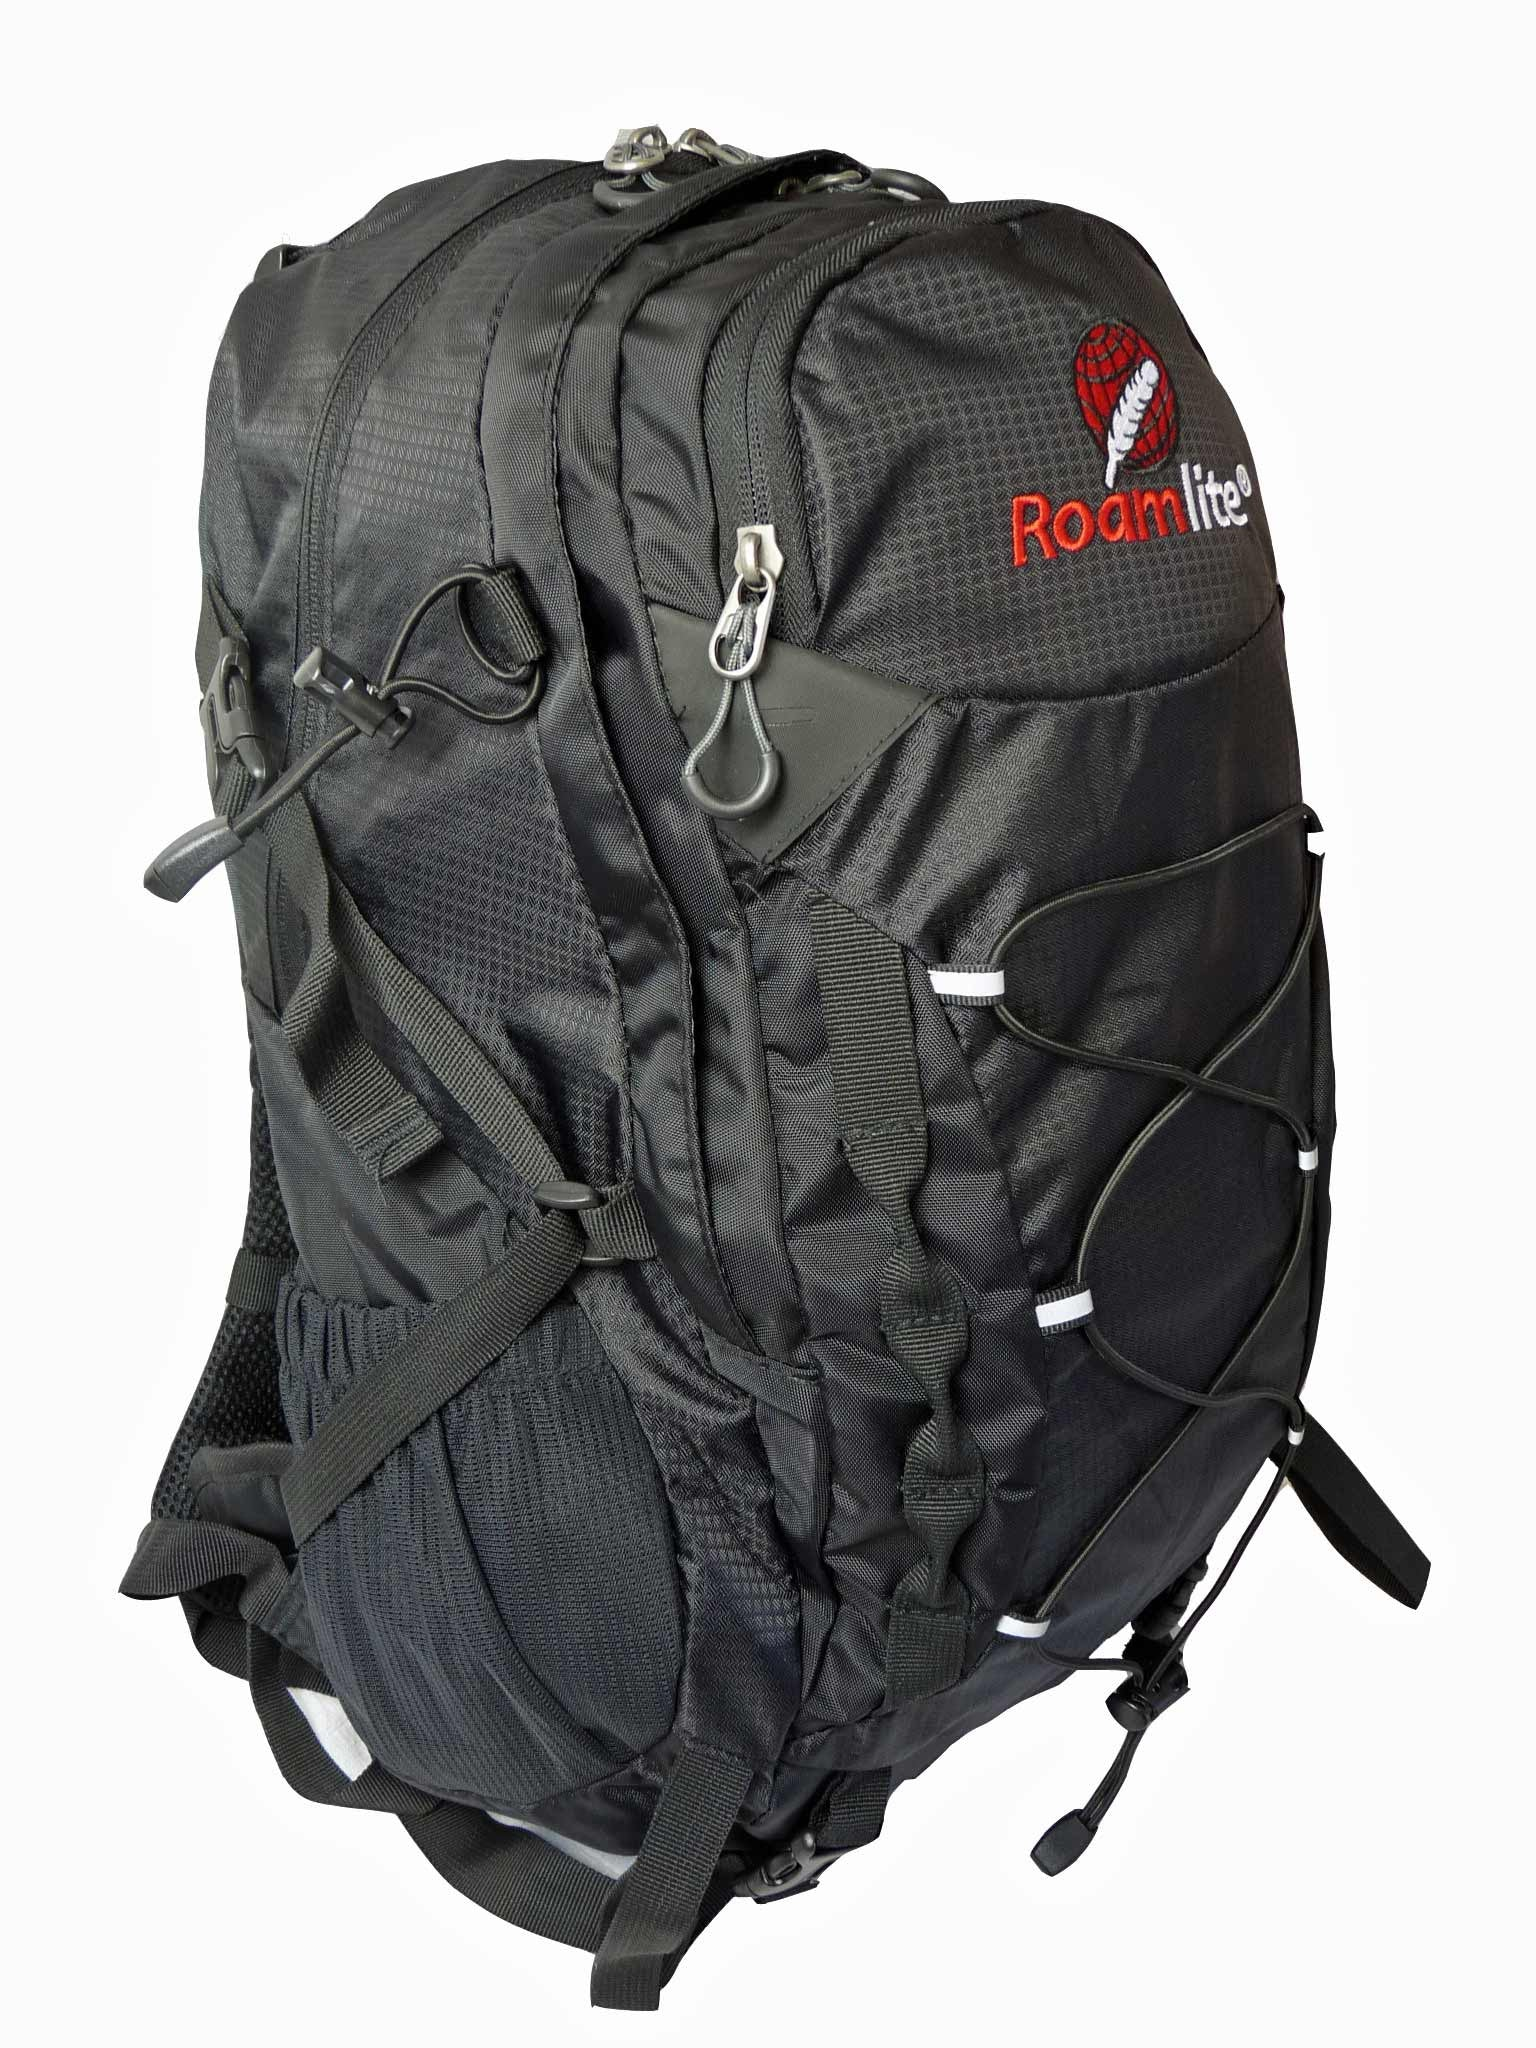 MacBook Air Backpack Rucksack Bag RL23K E SIDE VIEW